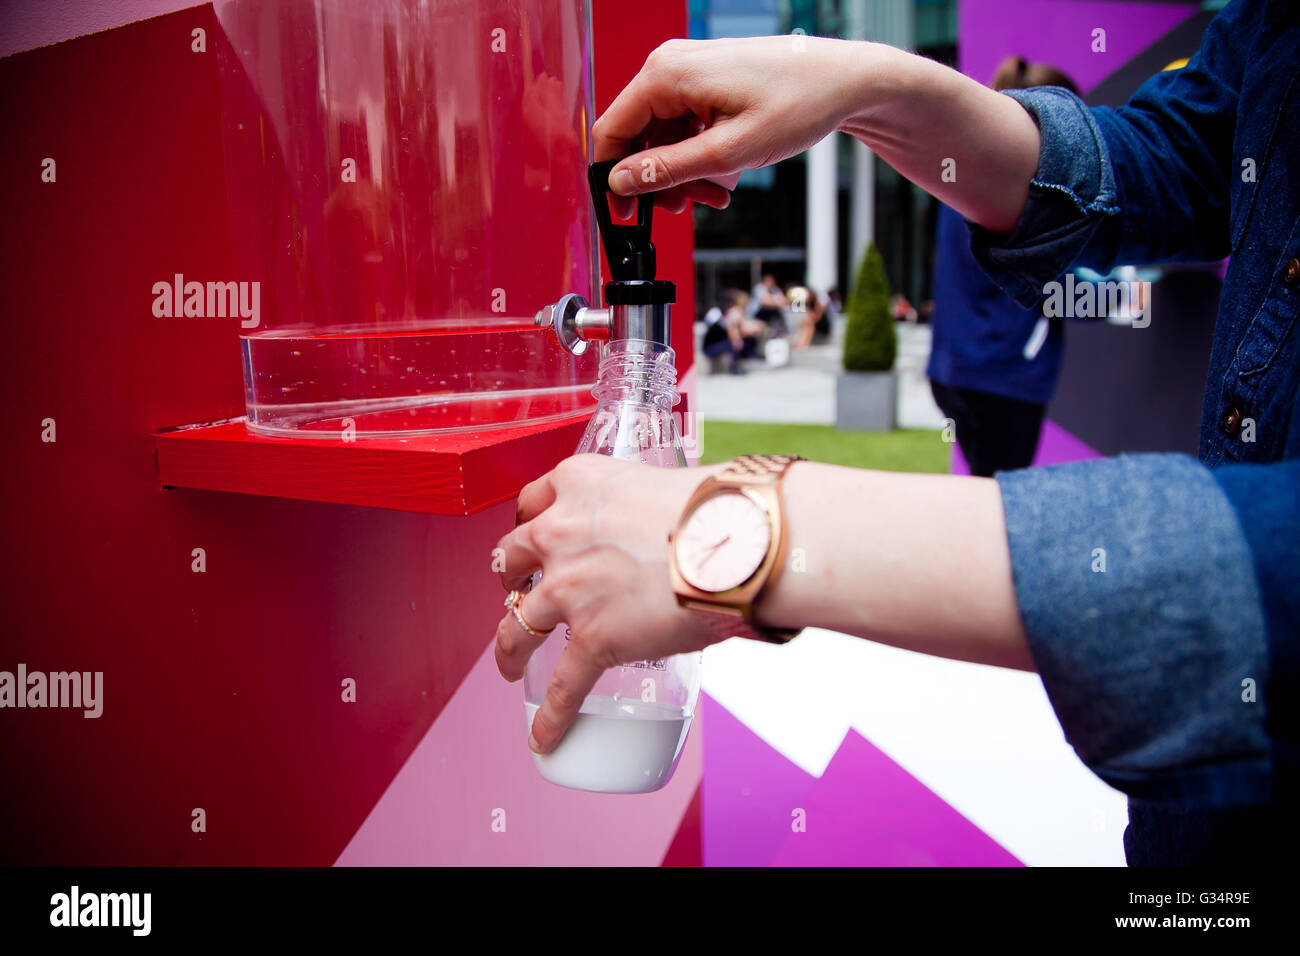 Regents Place, London 8 June 2016 SodaStream introduce the UK's first drinking art installation.            - Stock Image